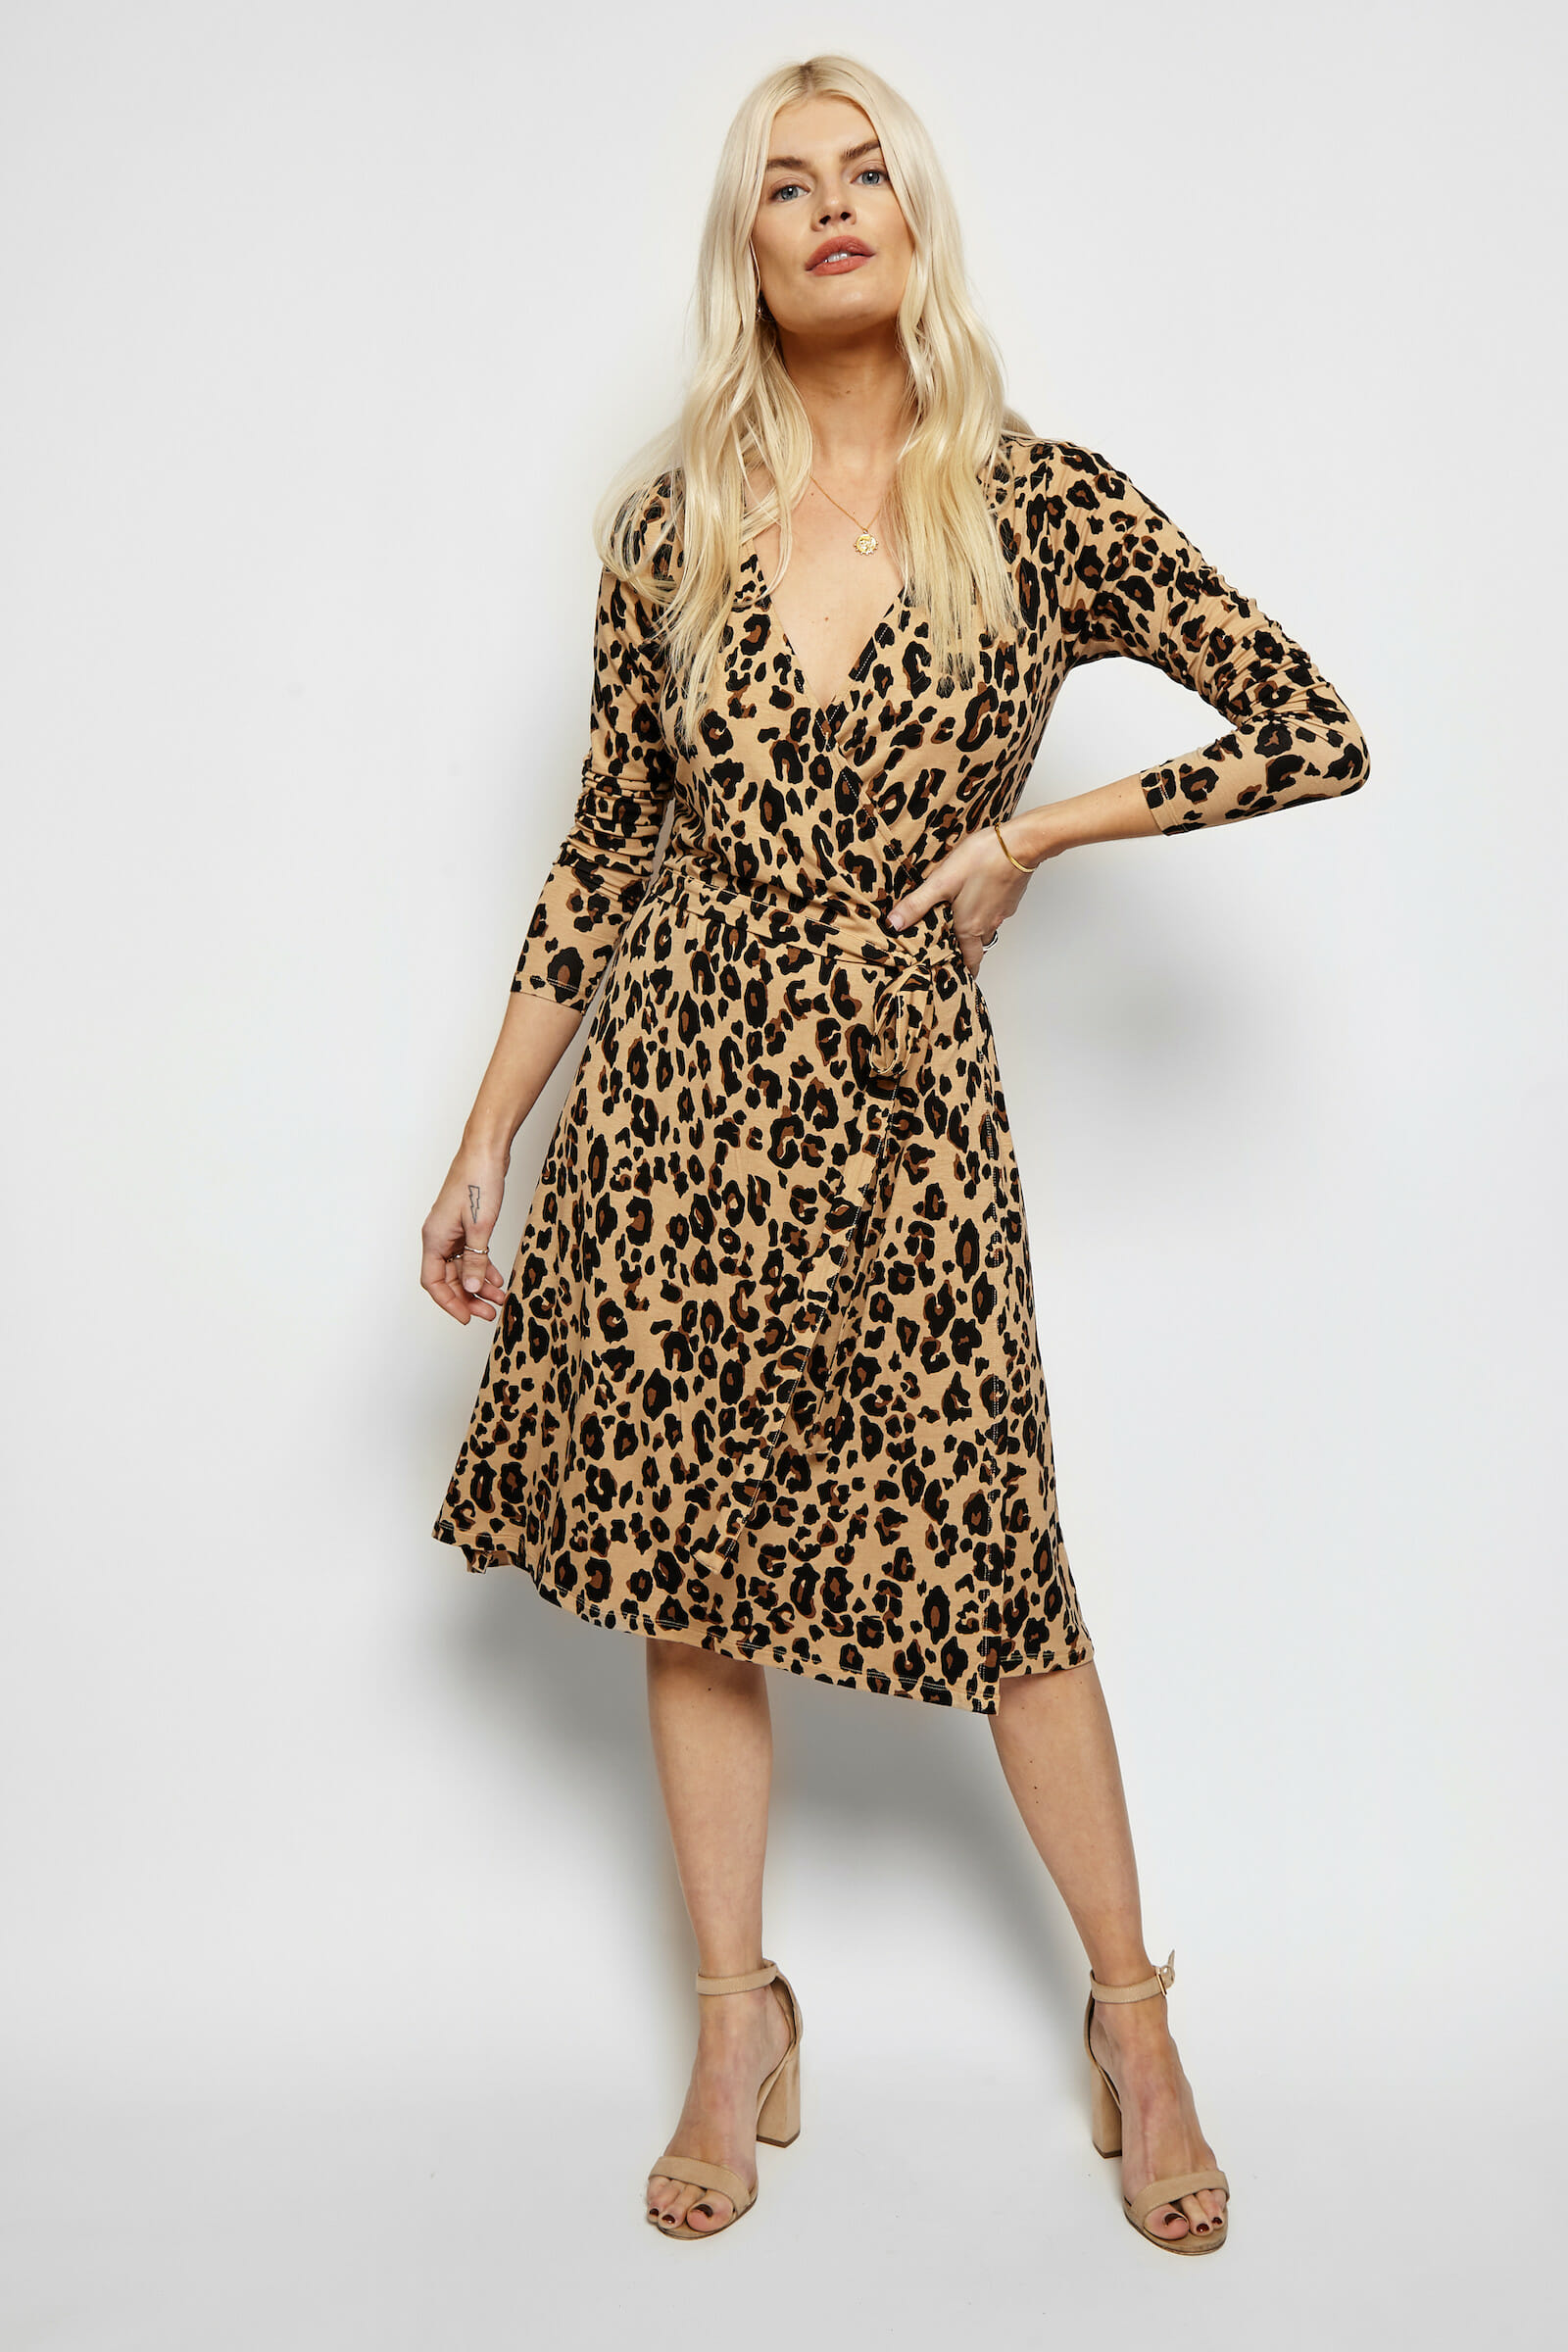 Lady wearing an animal print toffee and taupe wrap dress